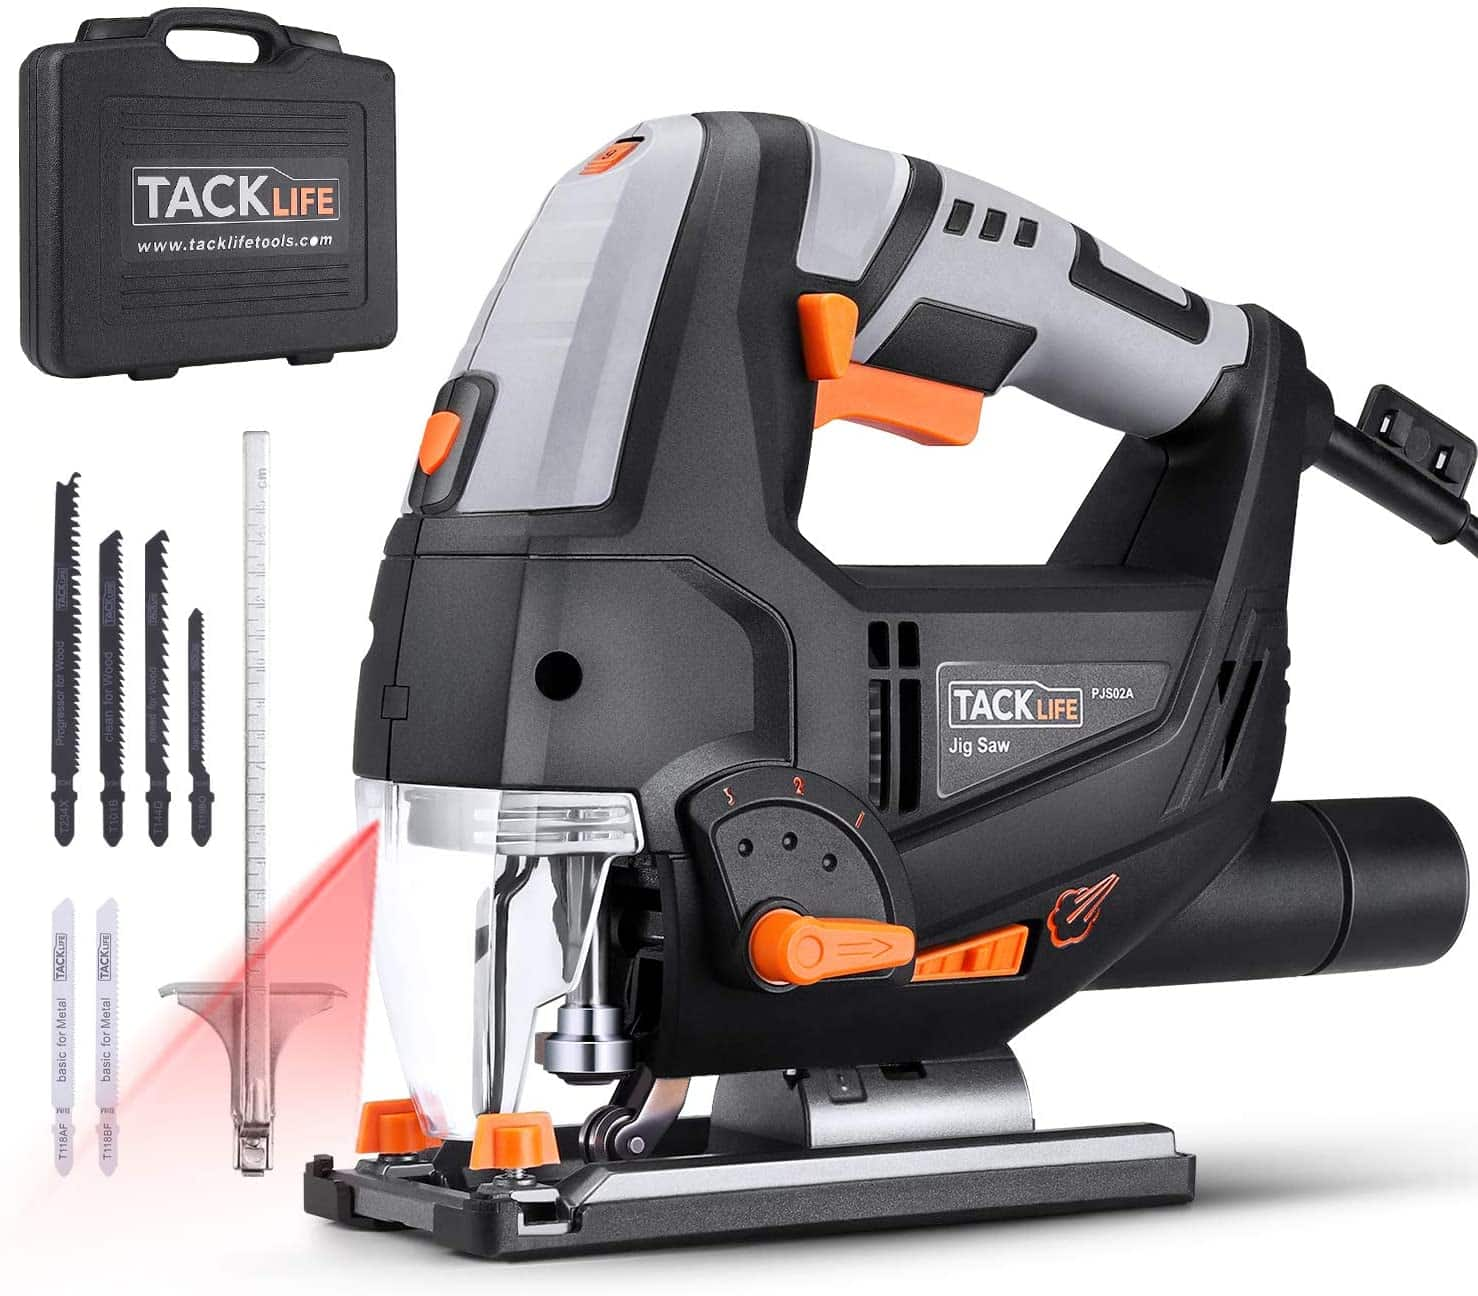 TACKLIFE Advanced 6.7 Amp Jigsaw with Laser & LED